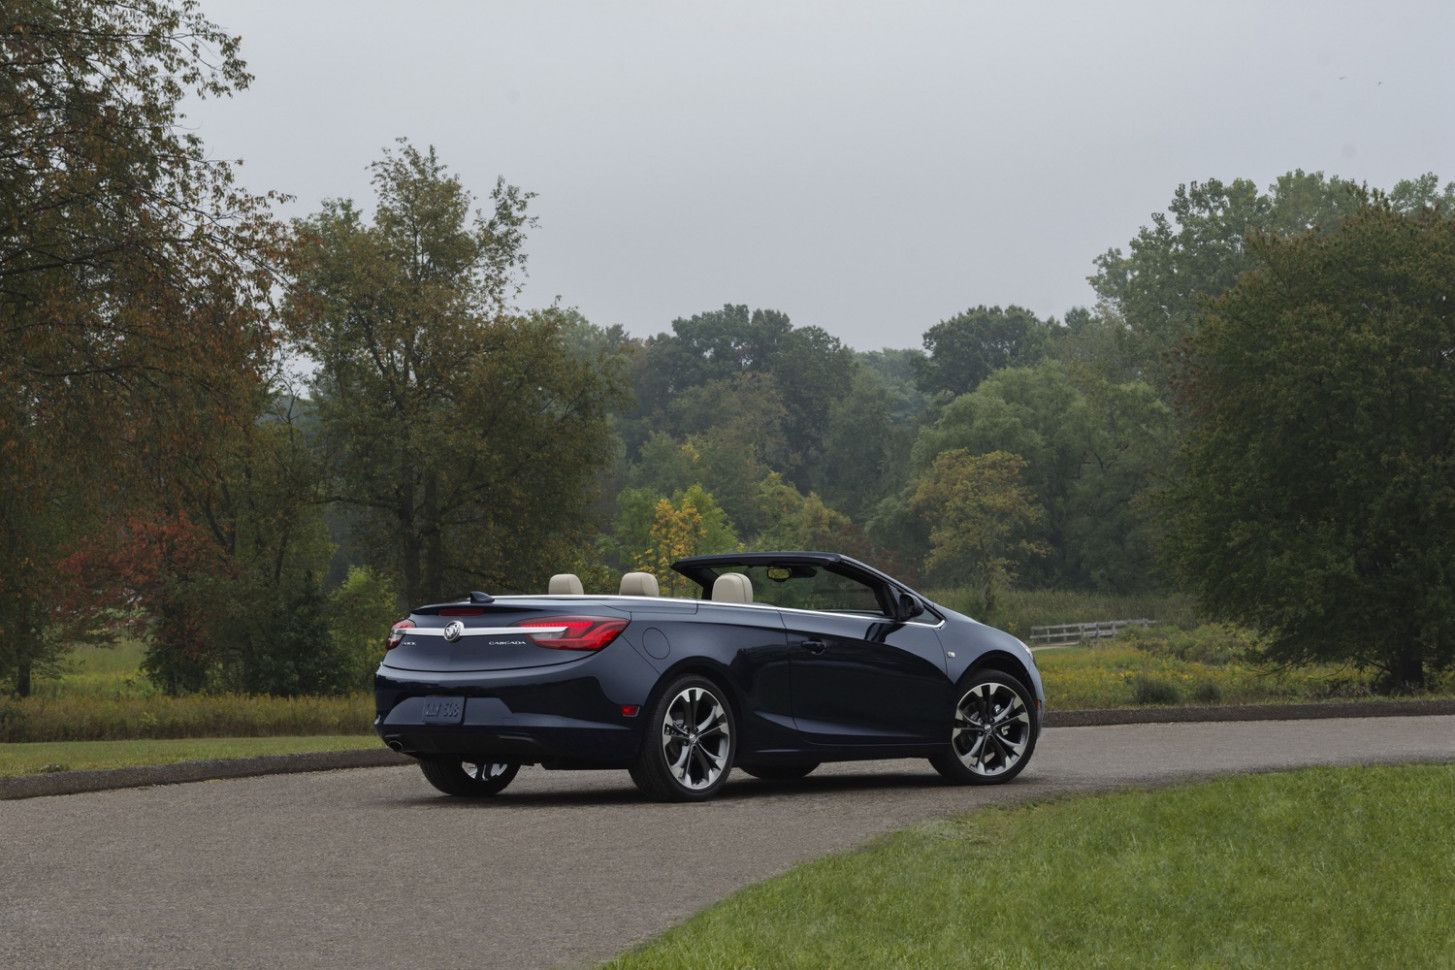 Buick Cascada 2020 Price And Release Date In 2020 Buick Cascada Buick Buick Envision